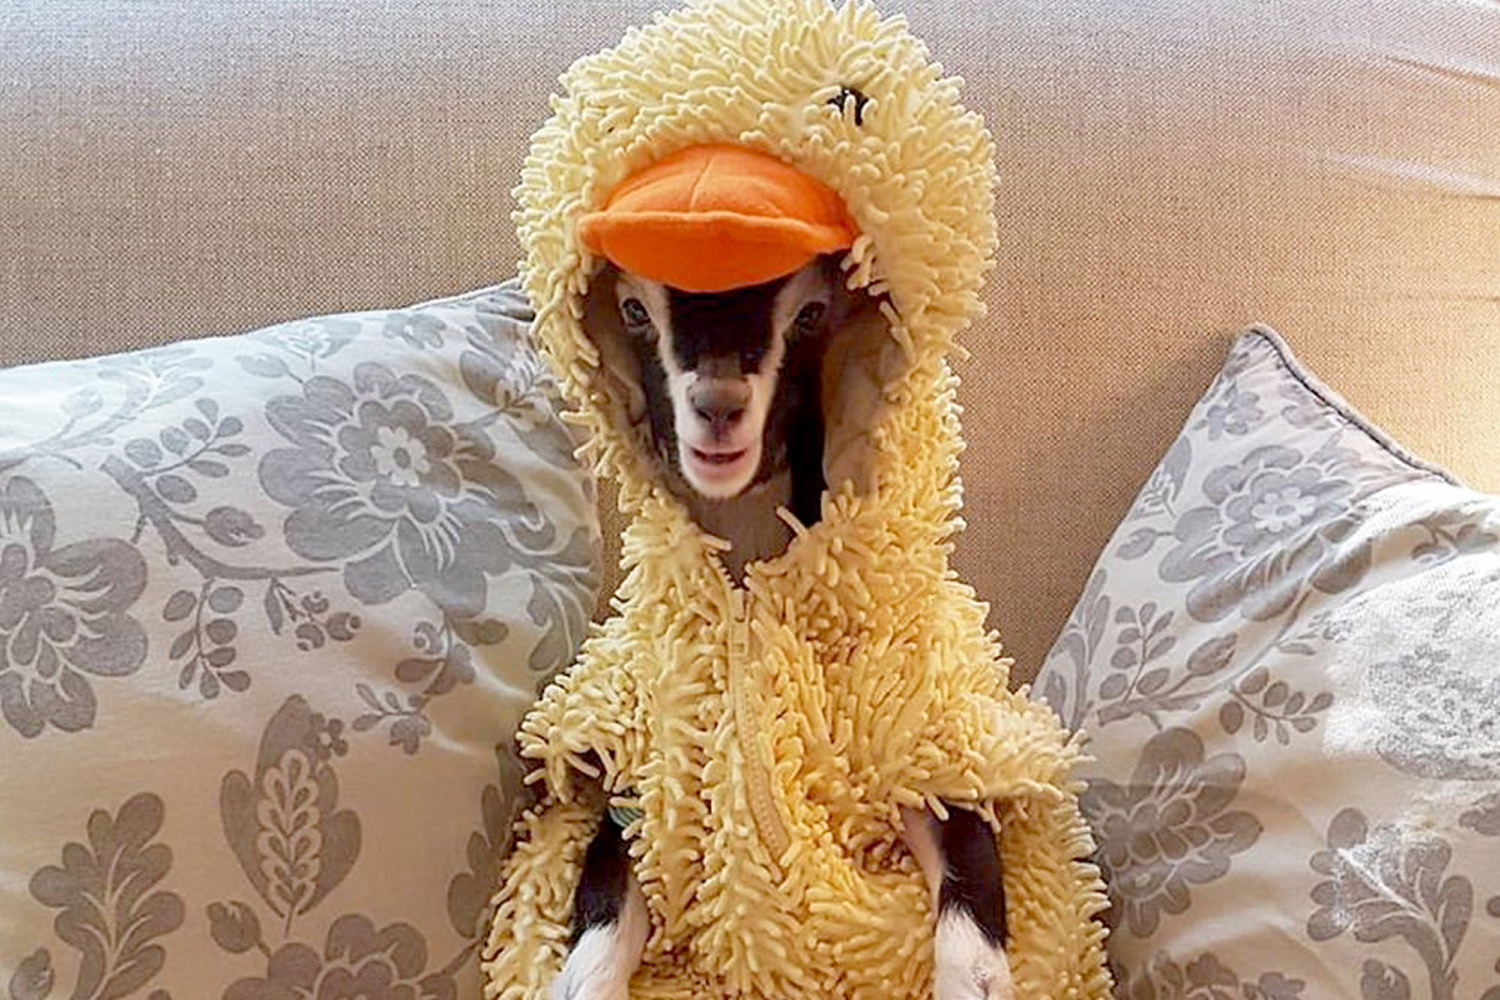 The Duck Goat Polly